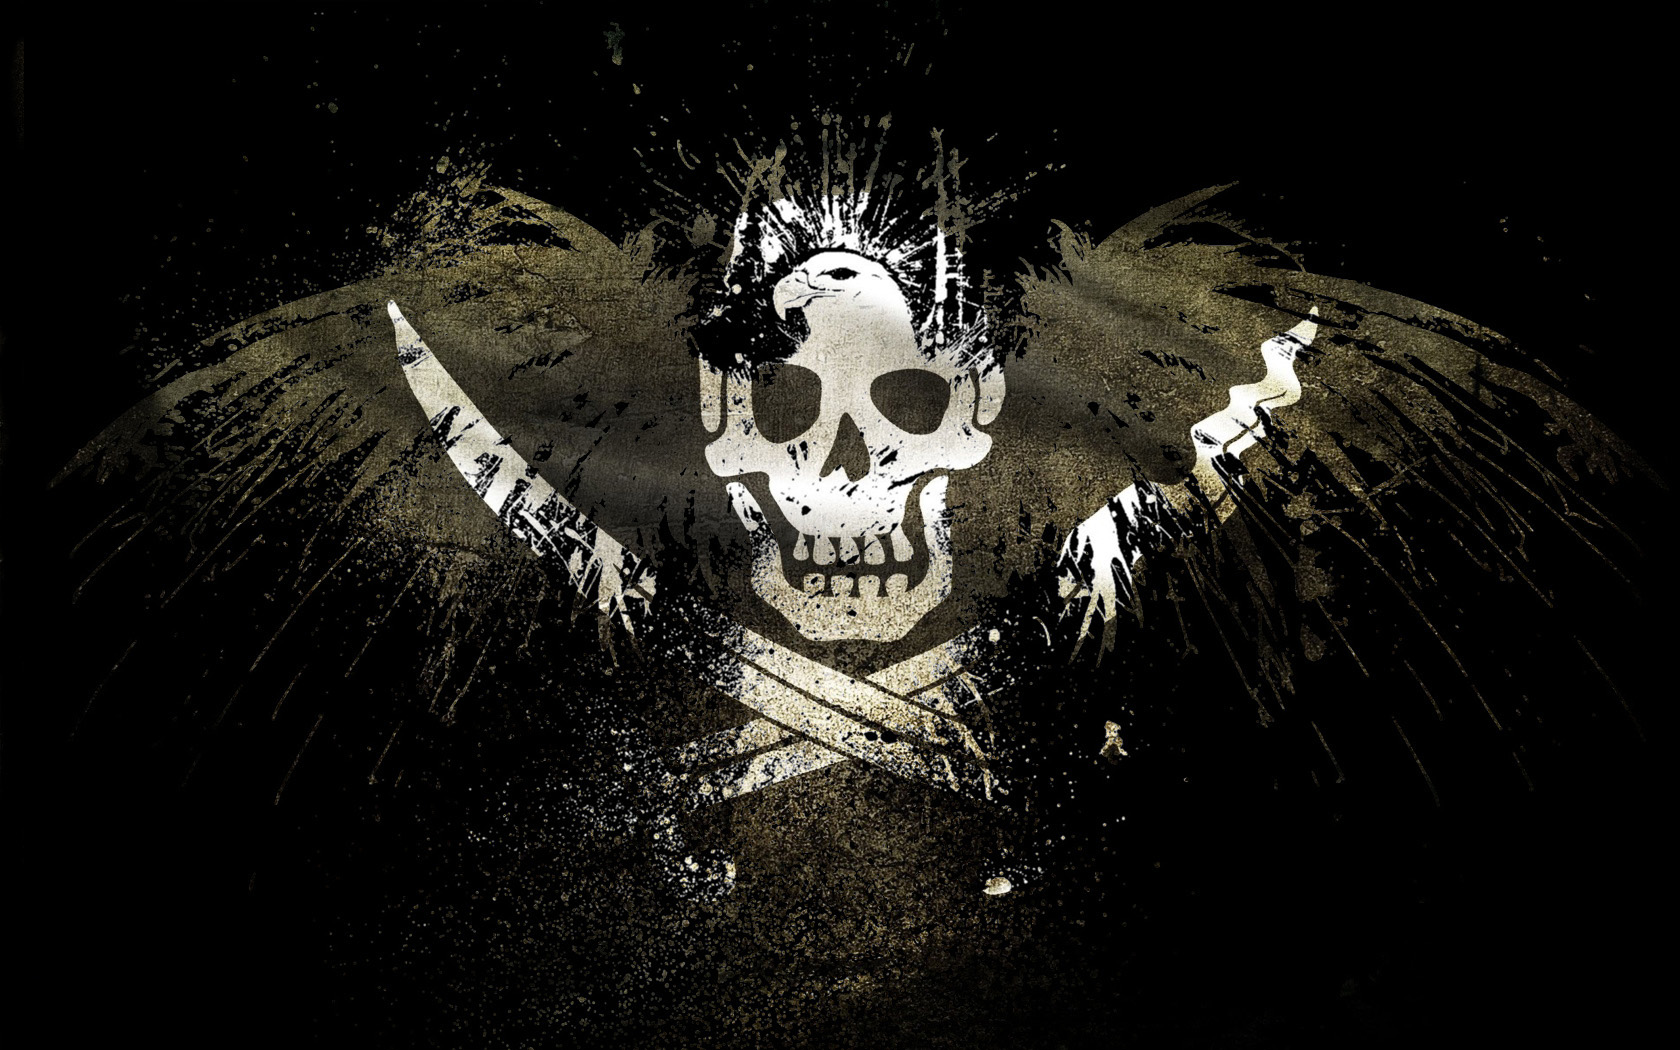 pirate hd wallpapers apple iphone - photo #21